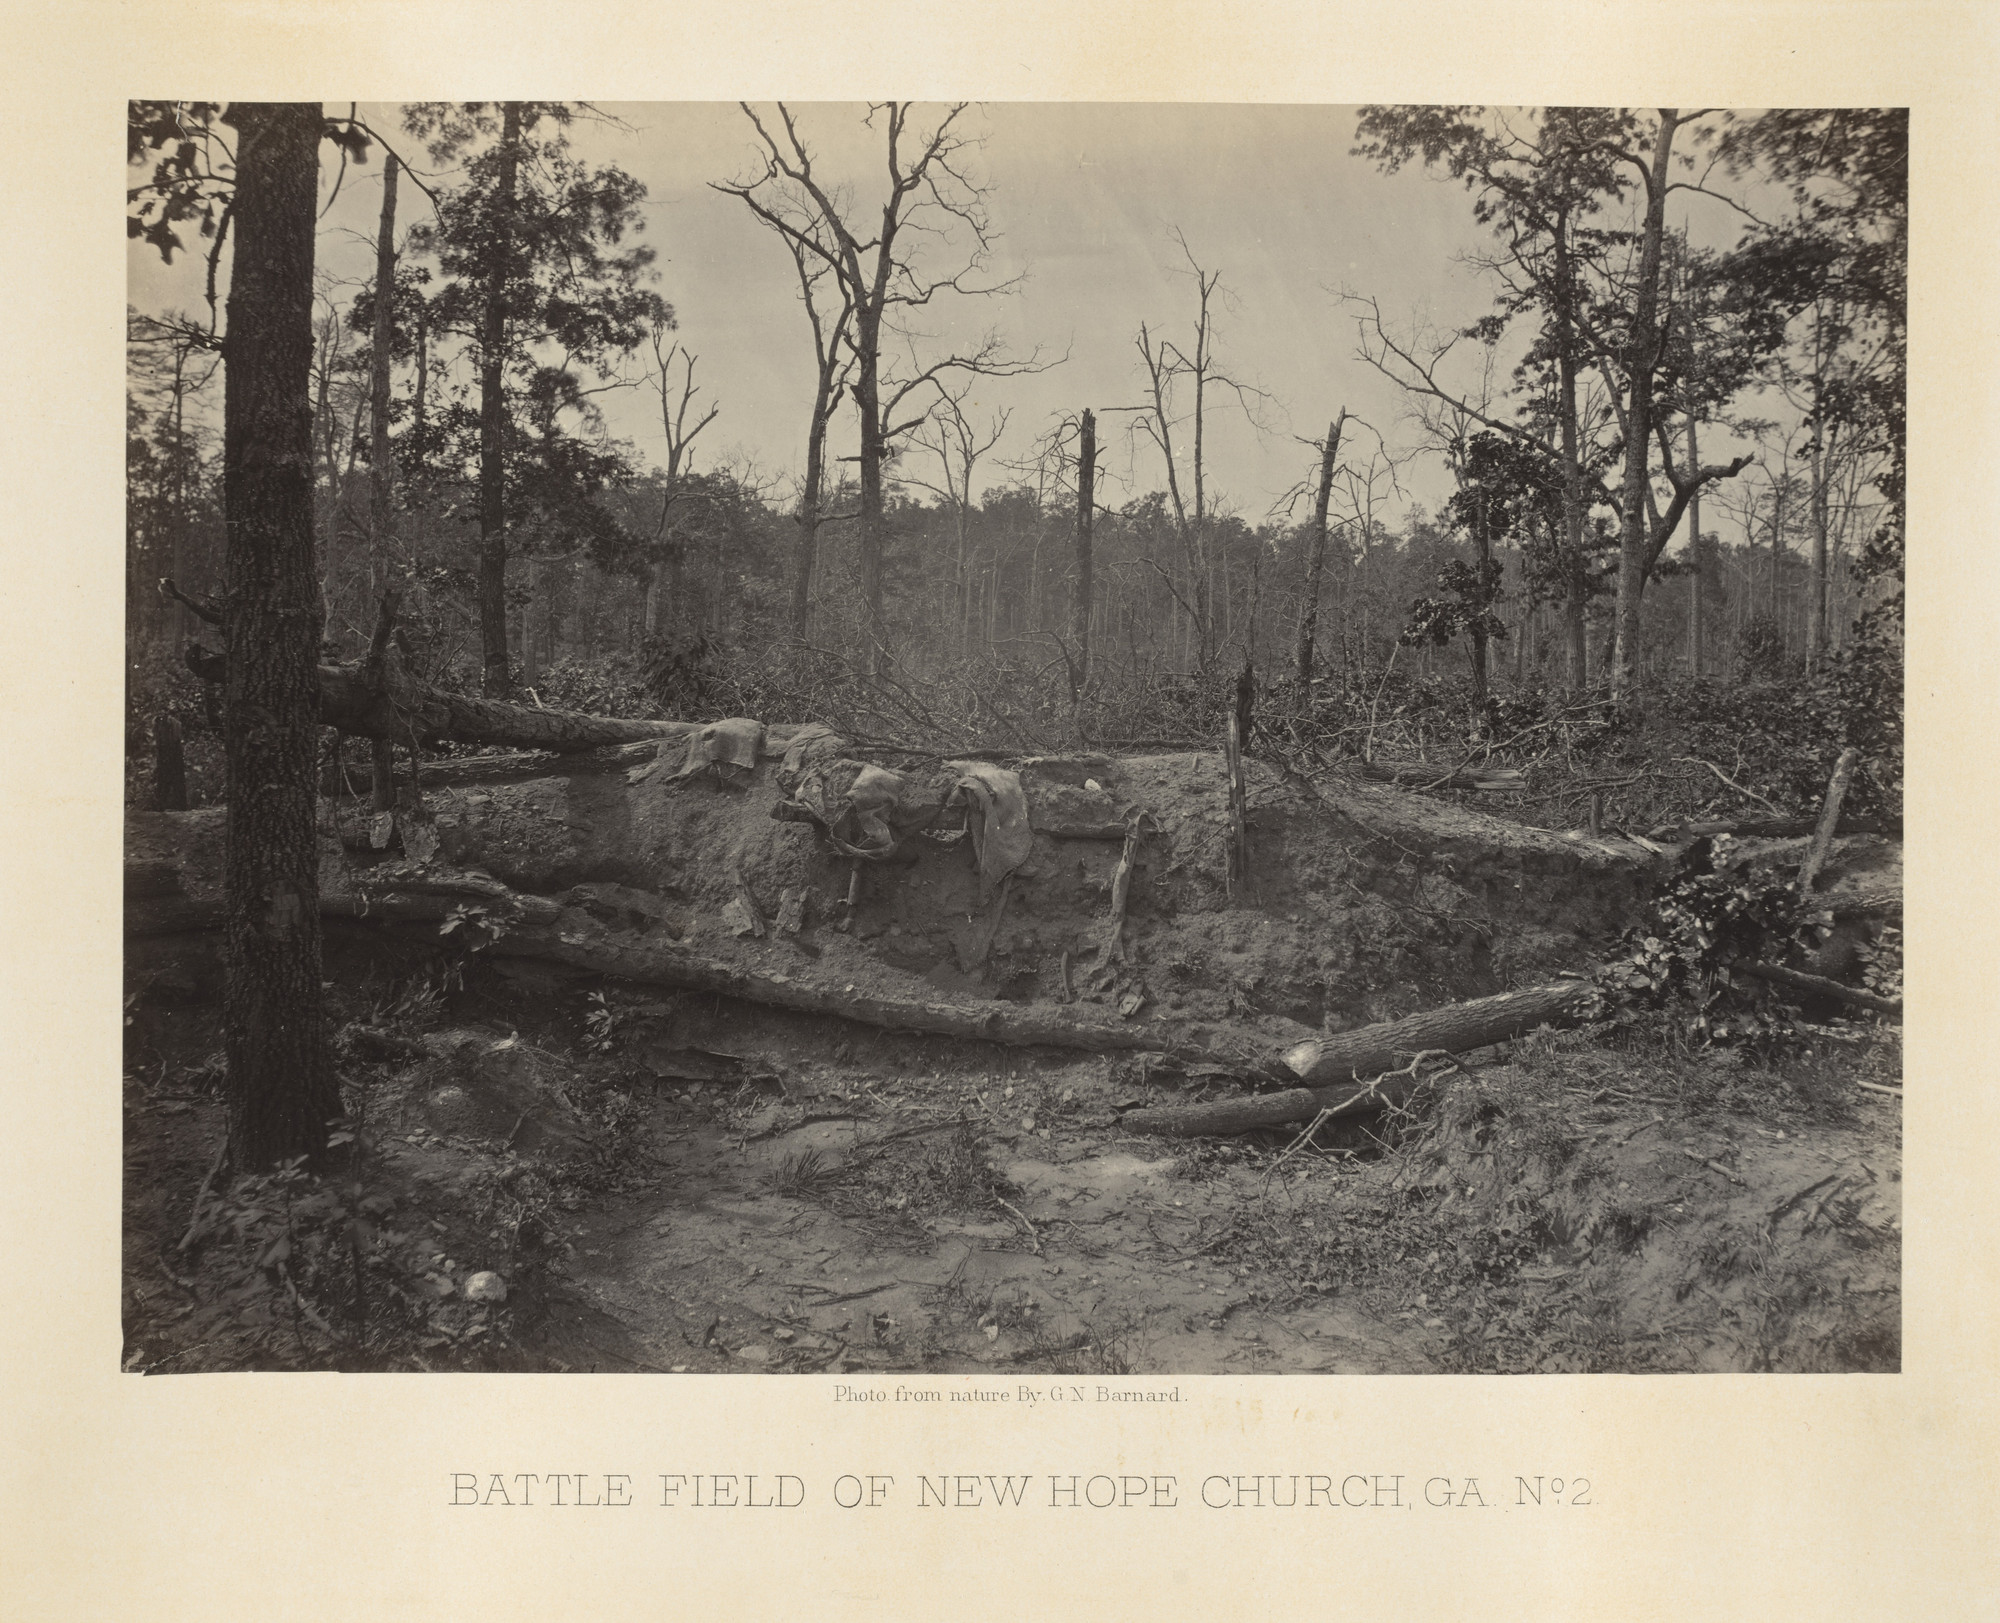 George Barnard. Battlefield of the New Hope Church, Georgia, No. 2 from the album Photographic Views of Sherman's Campaign. 1864-65